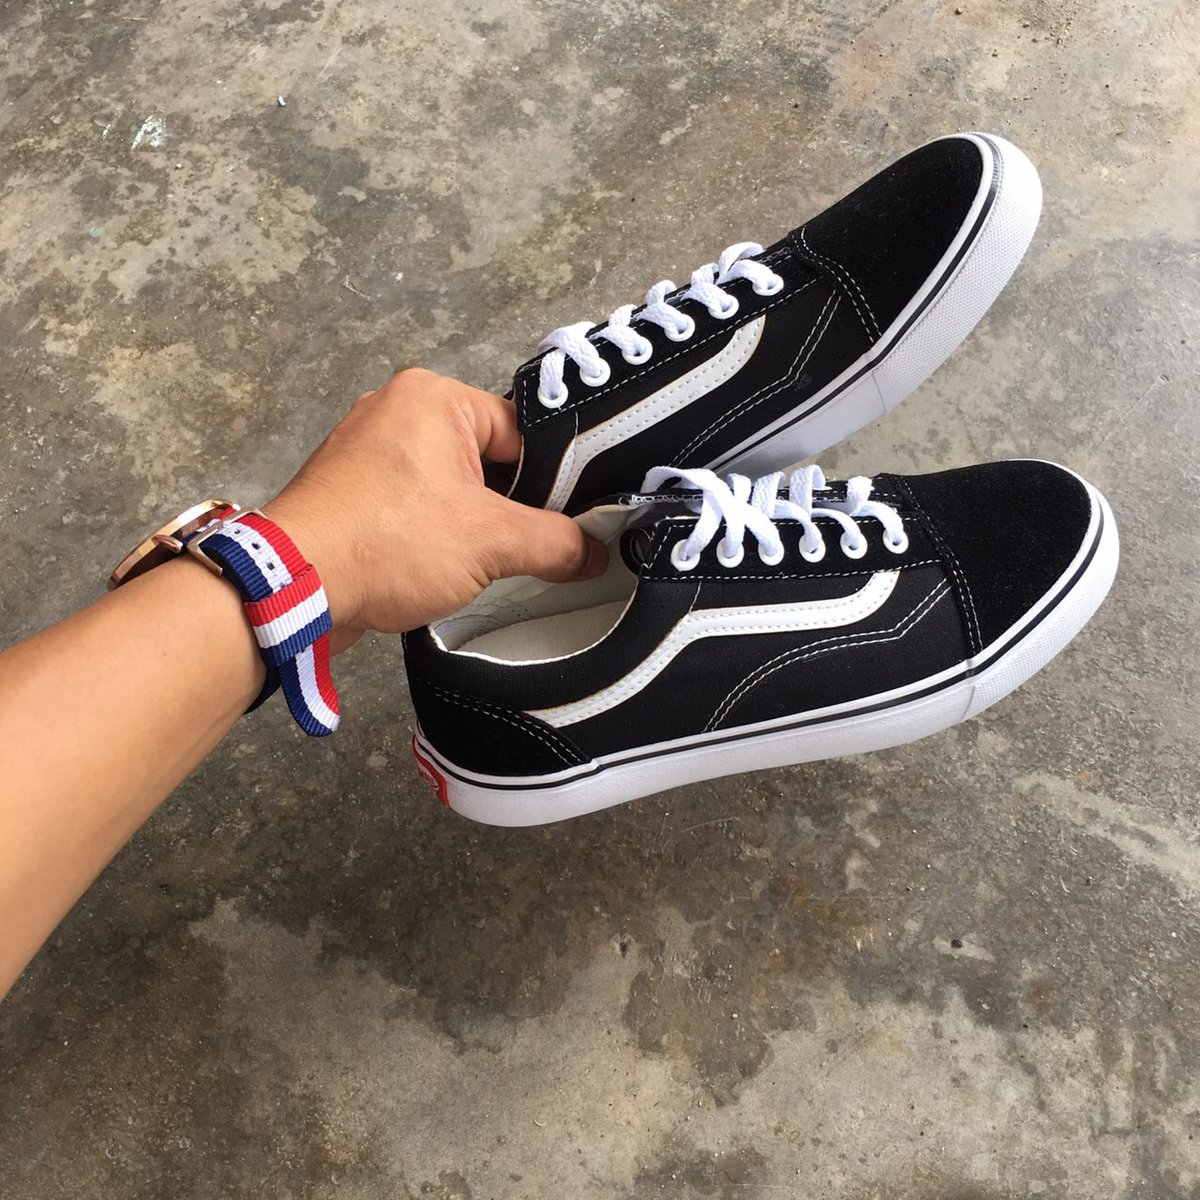 ea8cbadb47cba4 Vans Old Skool Size  - 36-45 Euro Harga offer  - RM 80 Only SM (inc postage)  RM 85 Only SS (inc postage) WhatsApp   0111-621  8182pic.twitter.com vzVx5A86eG